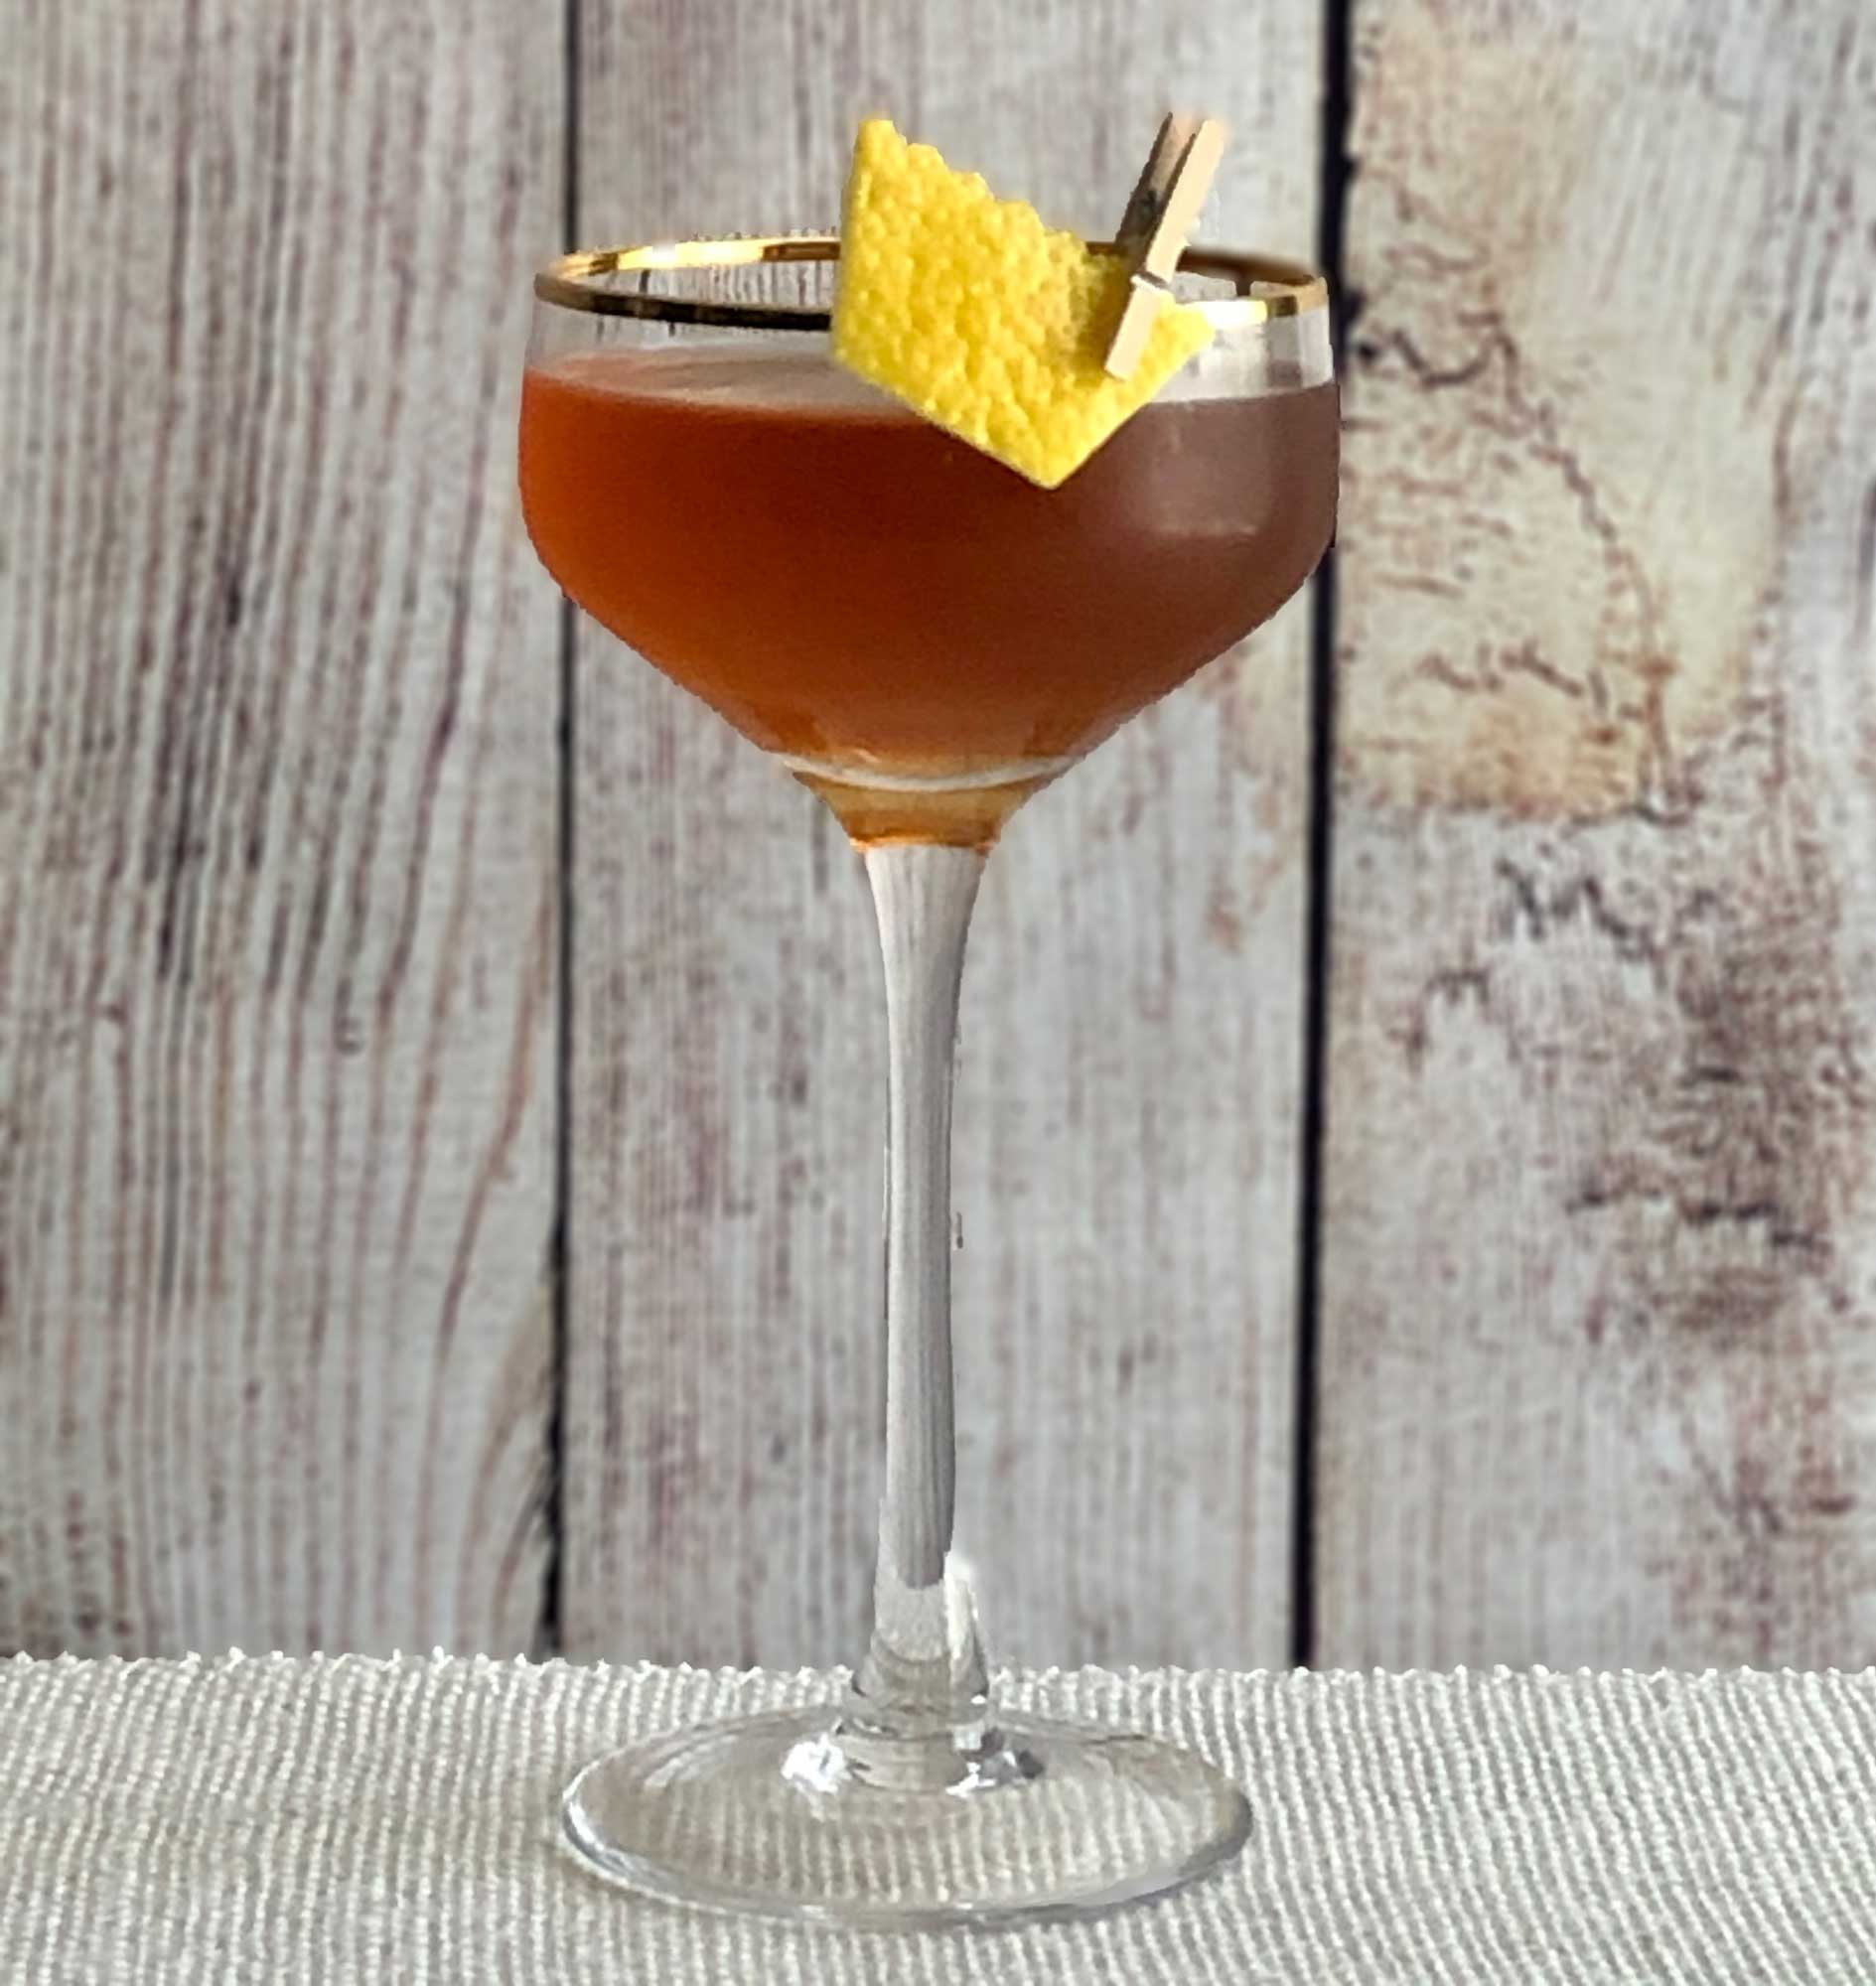 An example of the Return of the King, the mixed drink (cocktail), by John Filby, Augustine, NYC, featuring blended grain scotch or bourbon whiskey, Pasubio Vino Amaro, and Carpano Punt e Mes; photo by Lee Edwards